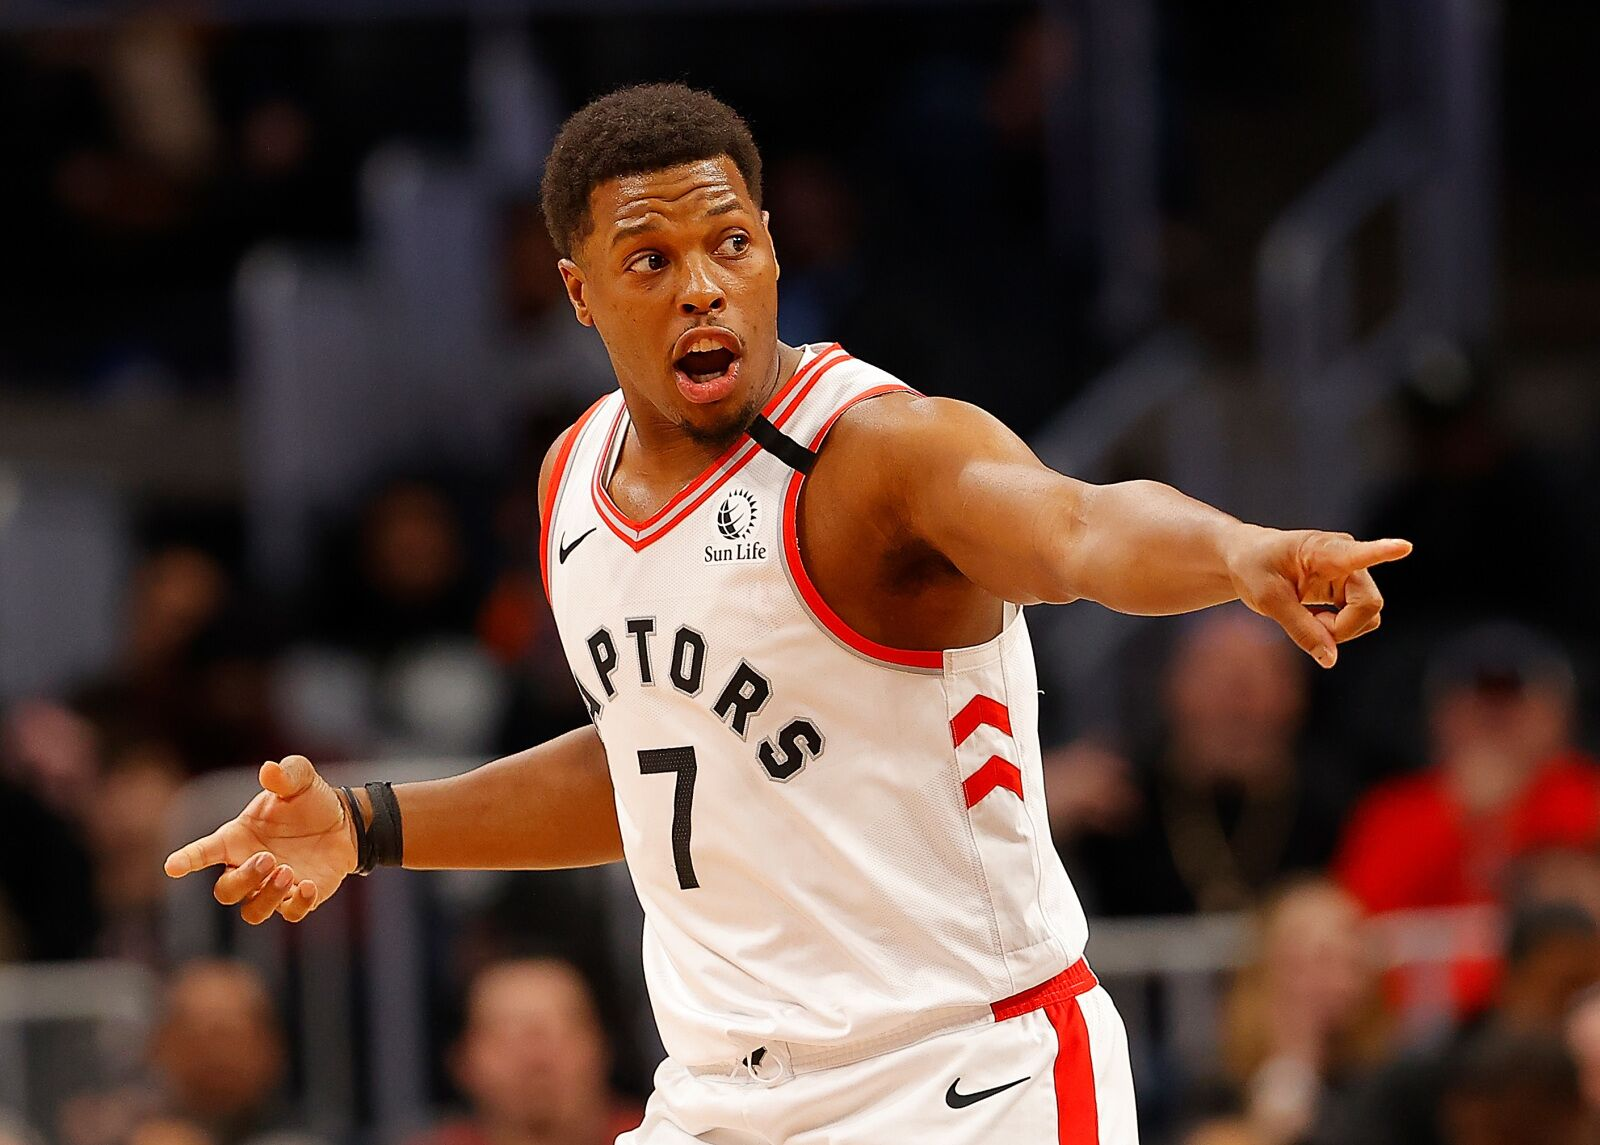 Toronto Raptors: Good news keeps coming for Kyle Lowry